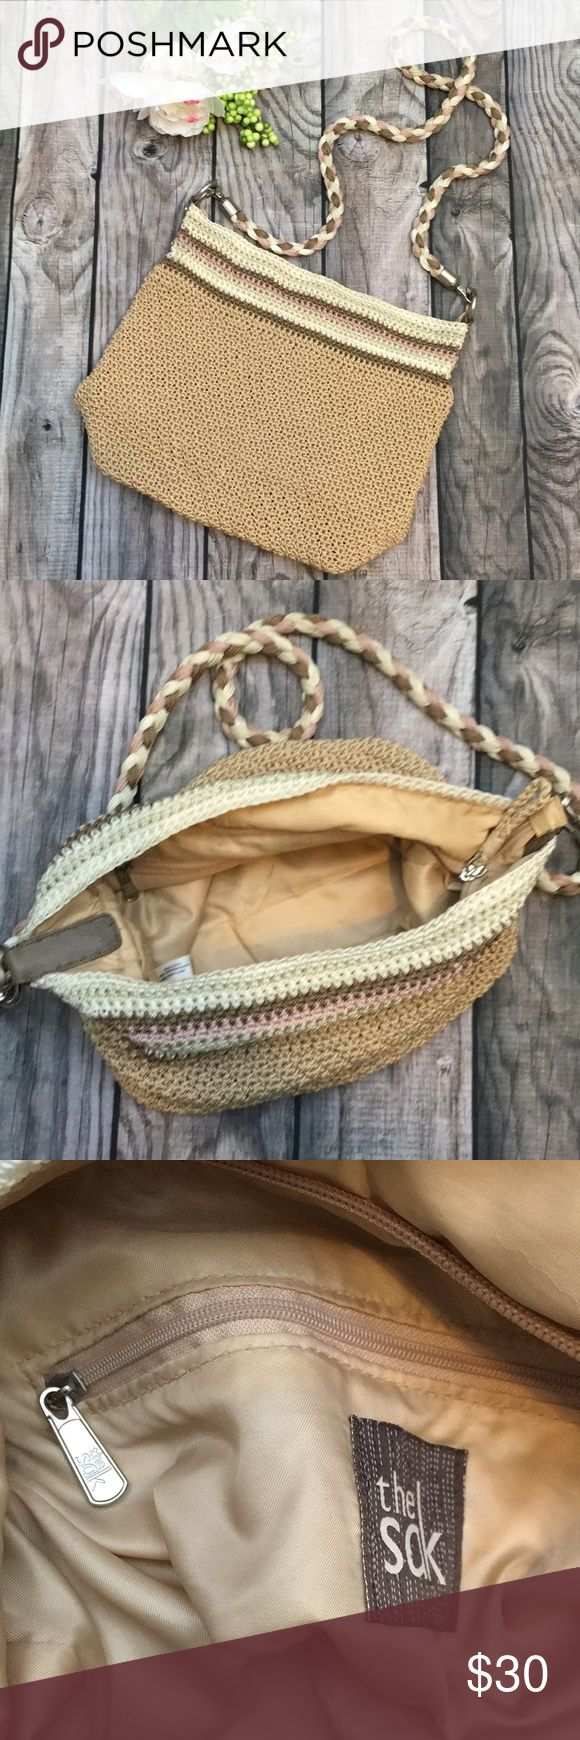 """THE SAK Neutral Tones Crocheted Shoulder Bag Great condition! Tan body with cream, brown, and blush stripe accents and braided shoulder strap.  14"""" long, 11"""" tall, 22"""" strap drop.  The top is zippered, and the hardware is silver tone. The Sak Bags Shoulder Bags"""